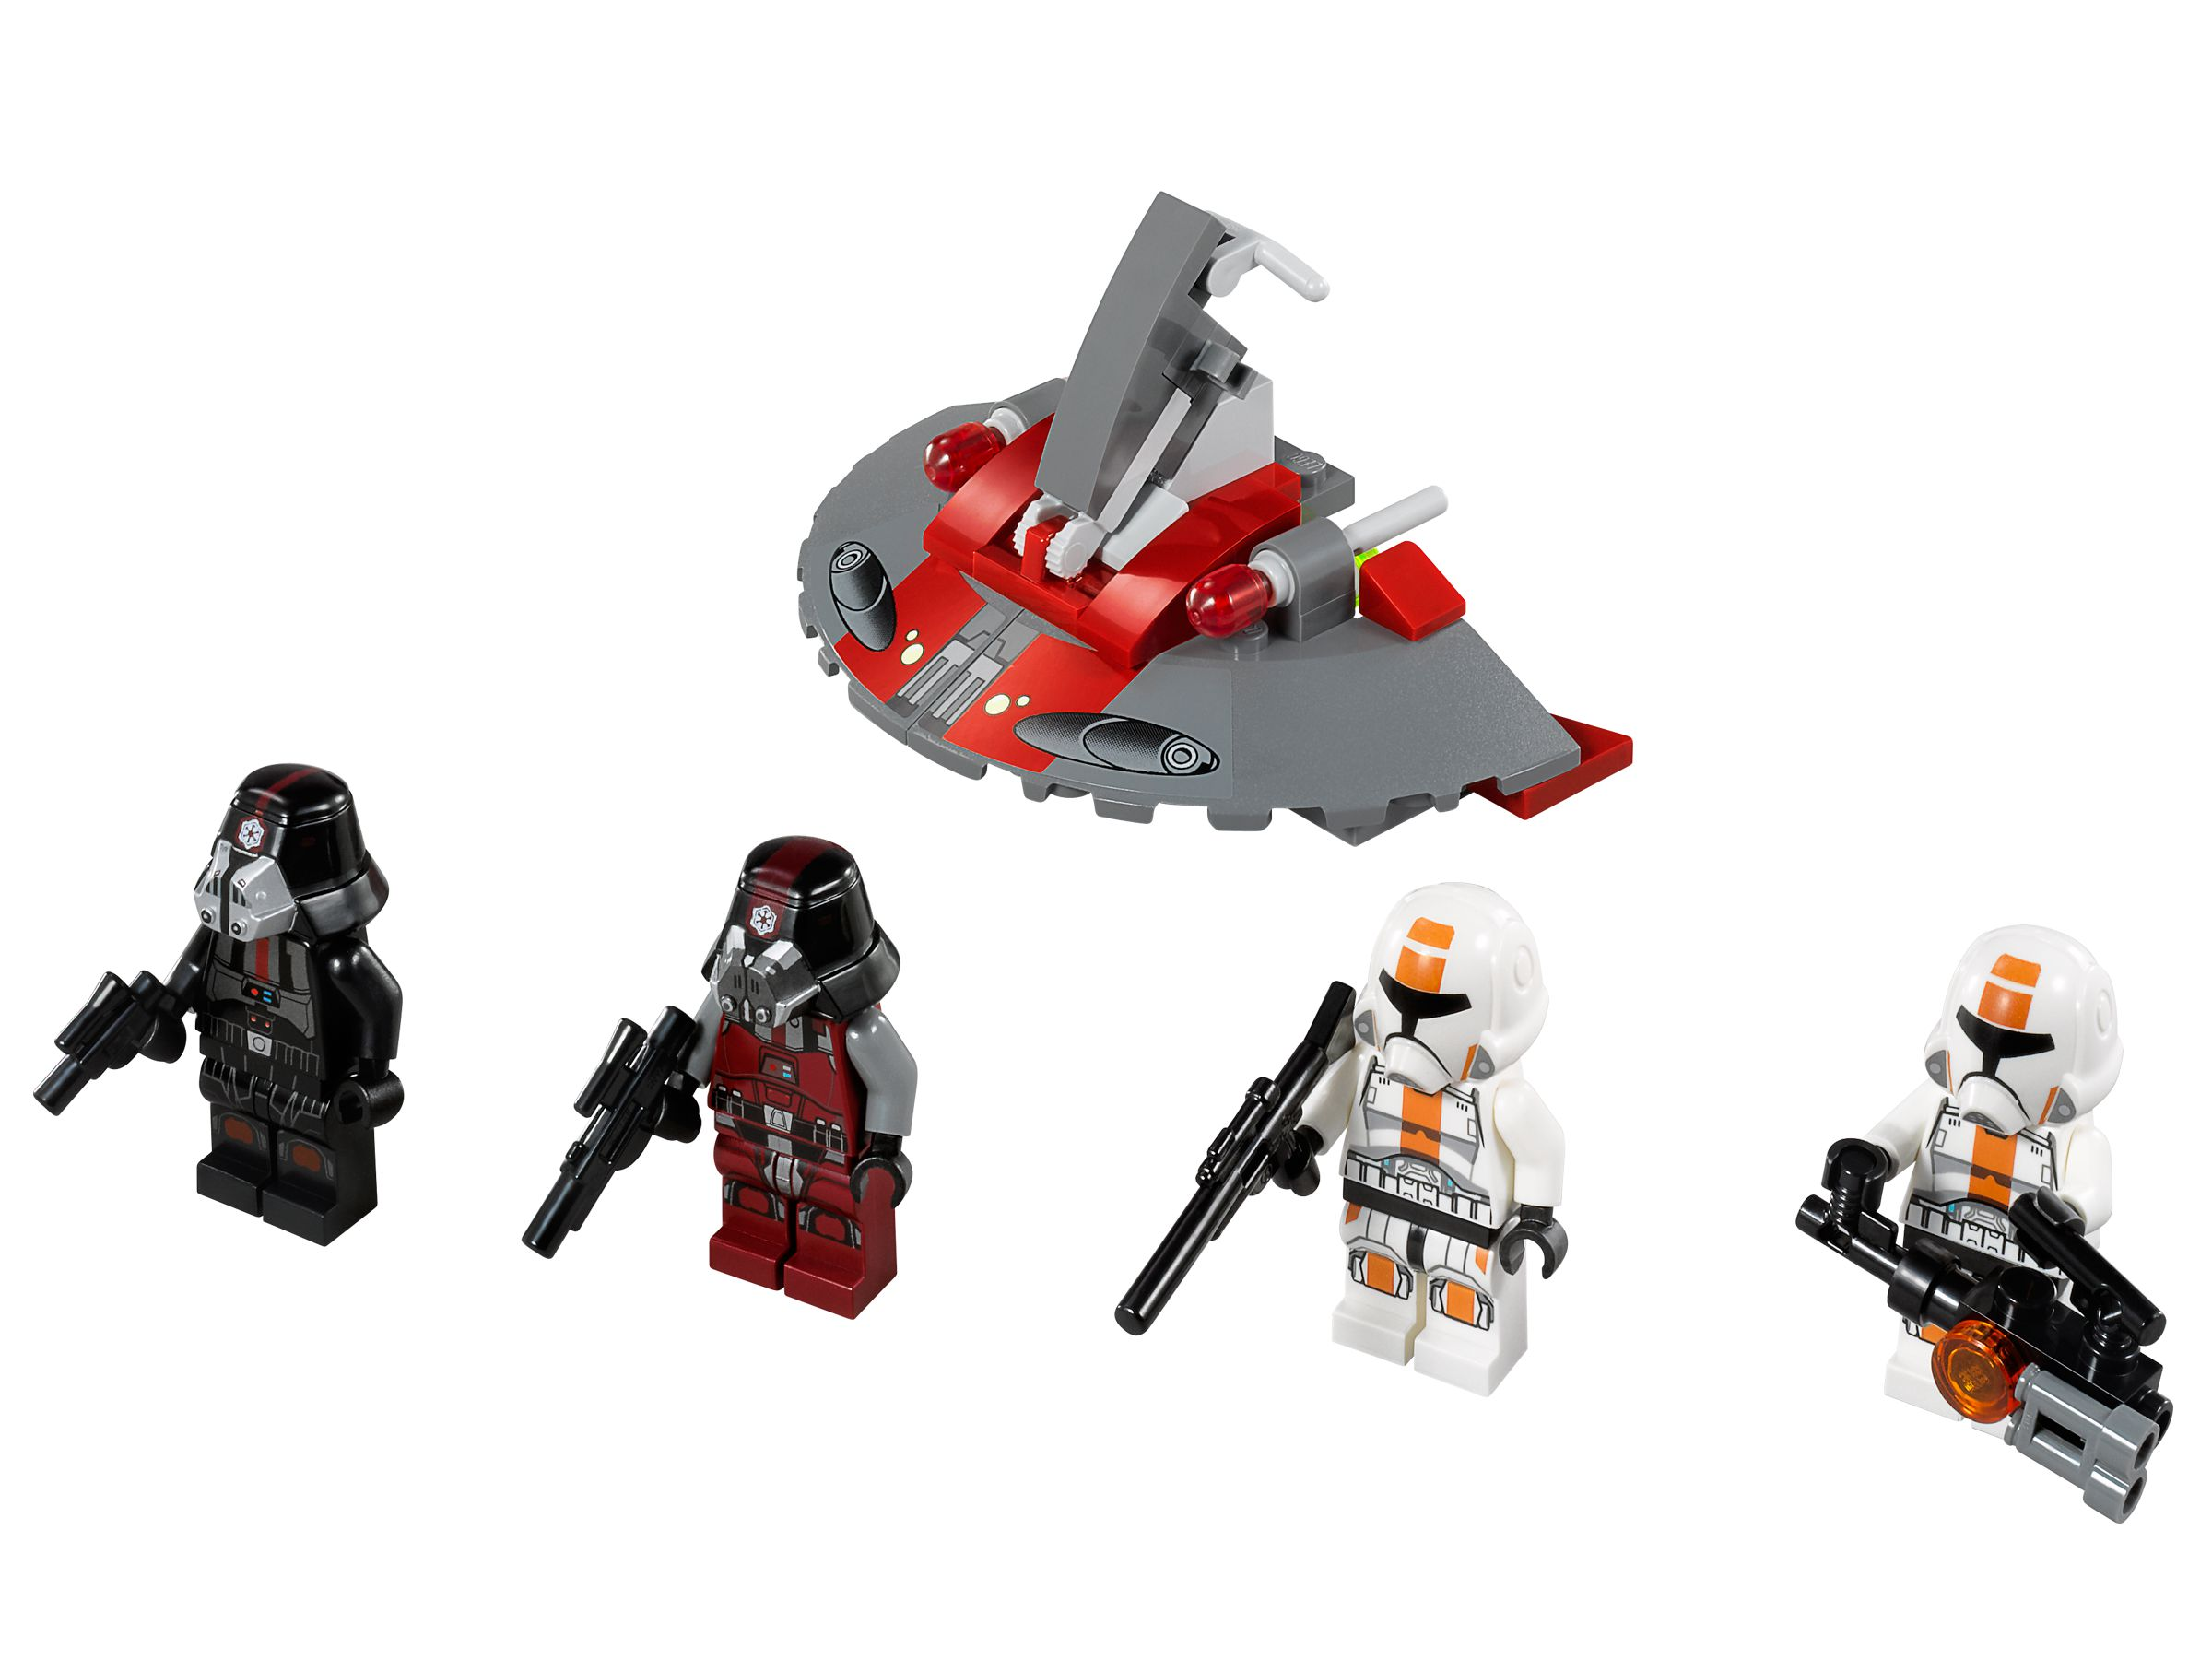 LEGO Star Wars 75001 Republic Troopers™ vs Sith™ Troopers LEGO_75001.jpg